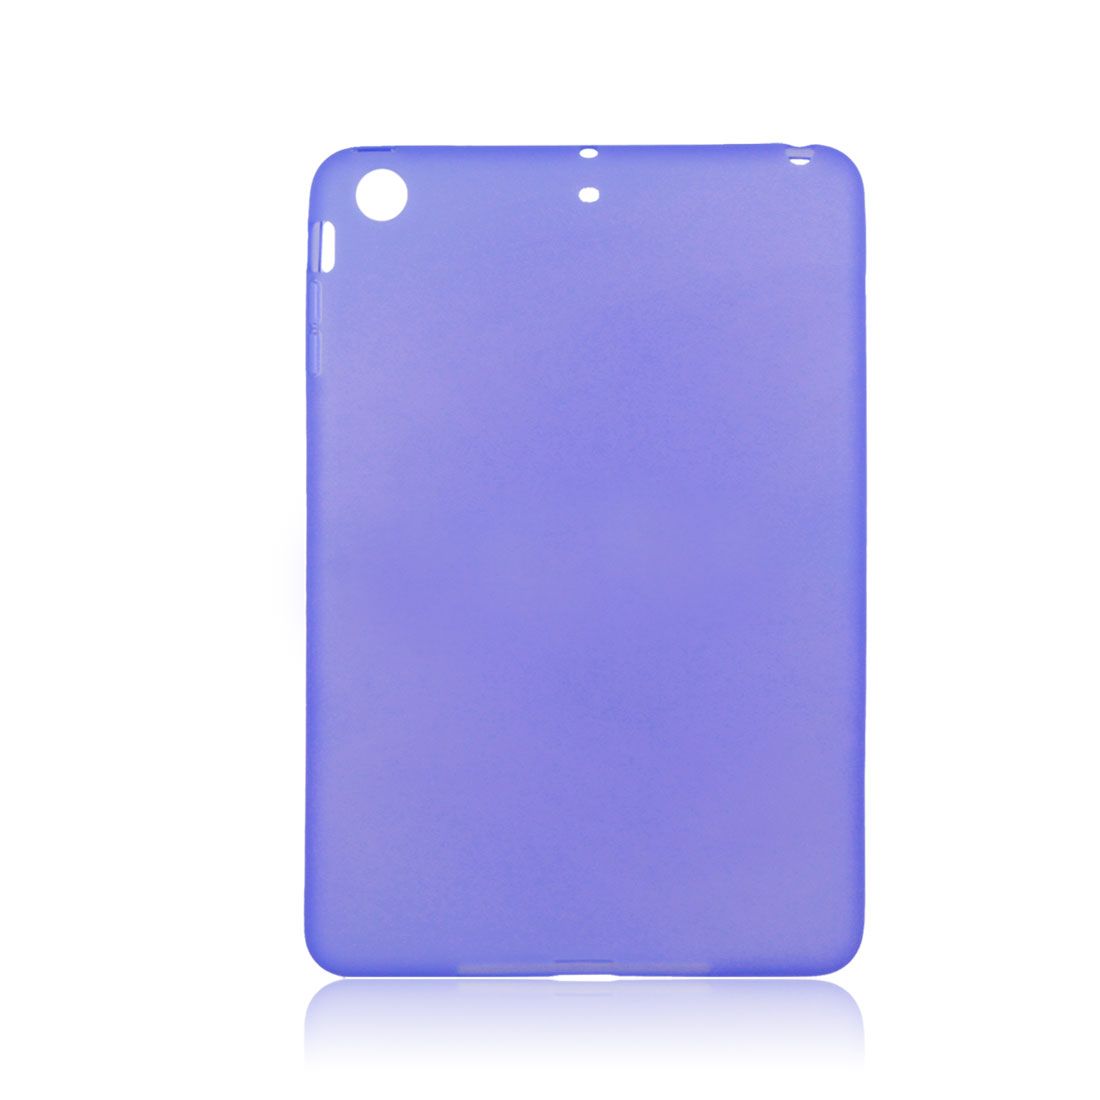 Purple Soft Plastic Case Cover Protector for Apple iPad Mini